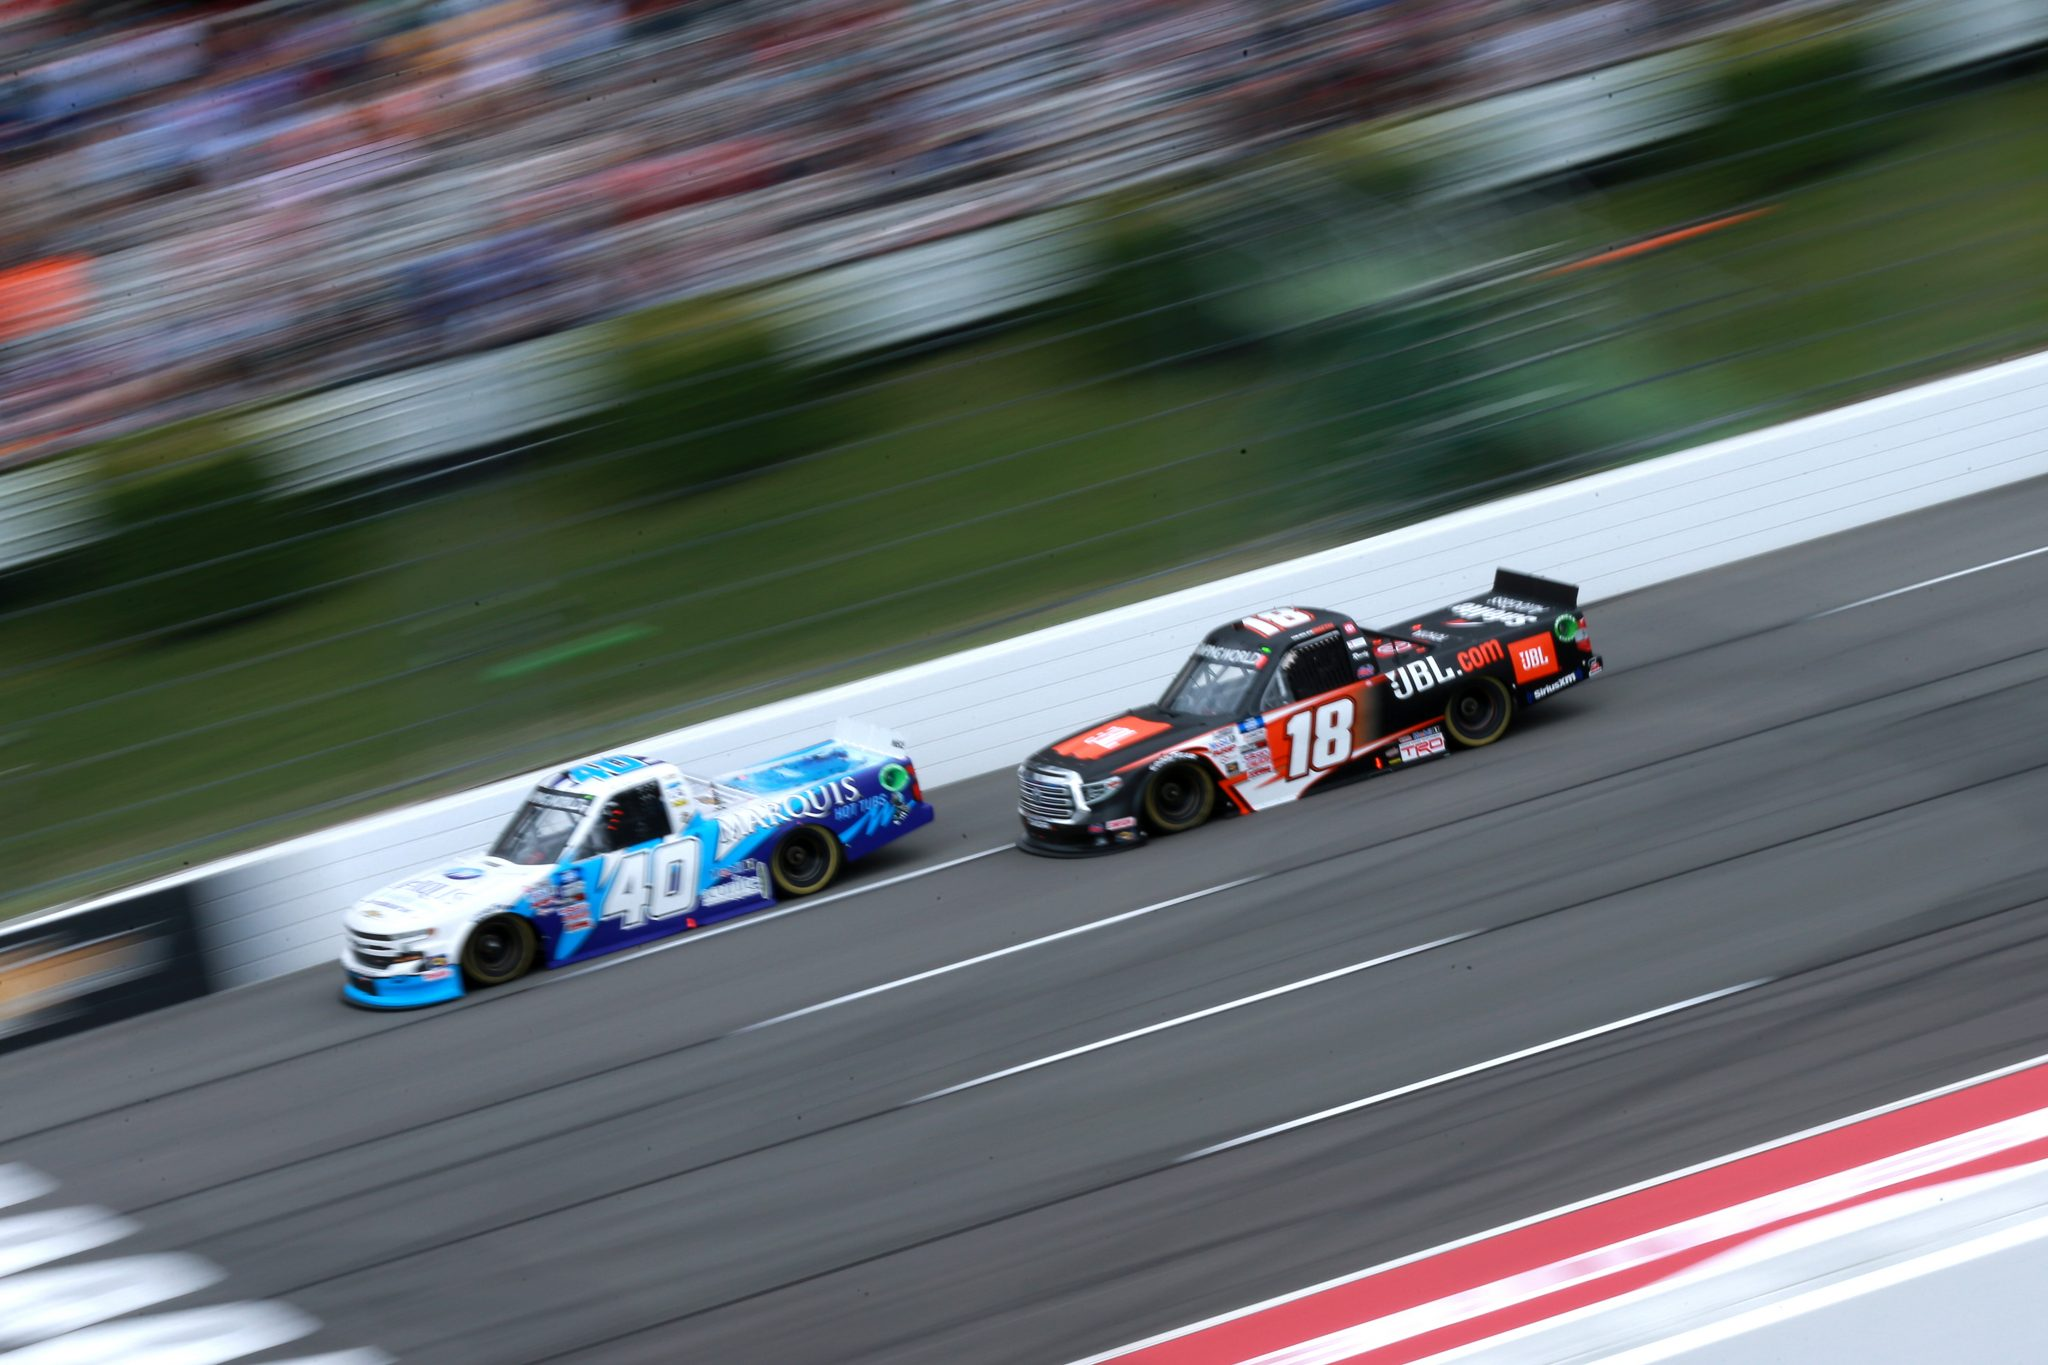 LONG POND, PENNSYLVANIA - JUNE 26: Ryan Truex, driver of the #40 Marquis Spas Chevrolet, and Chandler Smith, driver of the #18 JBL Toyota, race during the NASCAR Camping World Truck Series CRC Brakleen 150 at Pocono Raceway on June 26, 2021 in Long Pond, Pennsylvania. (Photo by Sean Gardner/Getty Images) | Getty Images